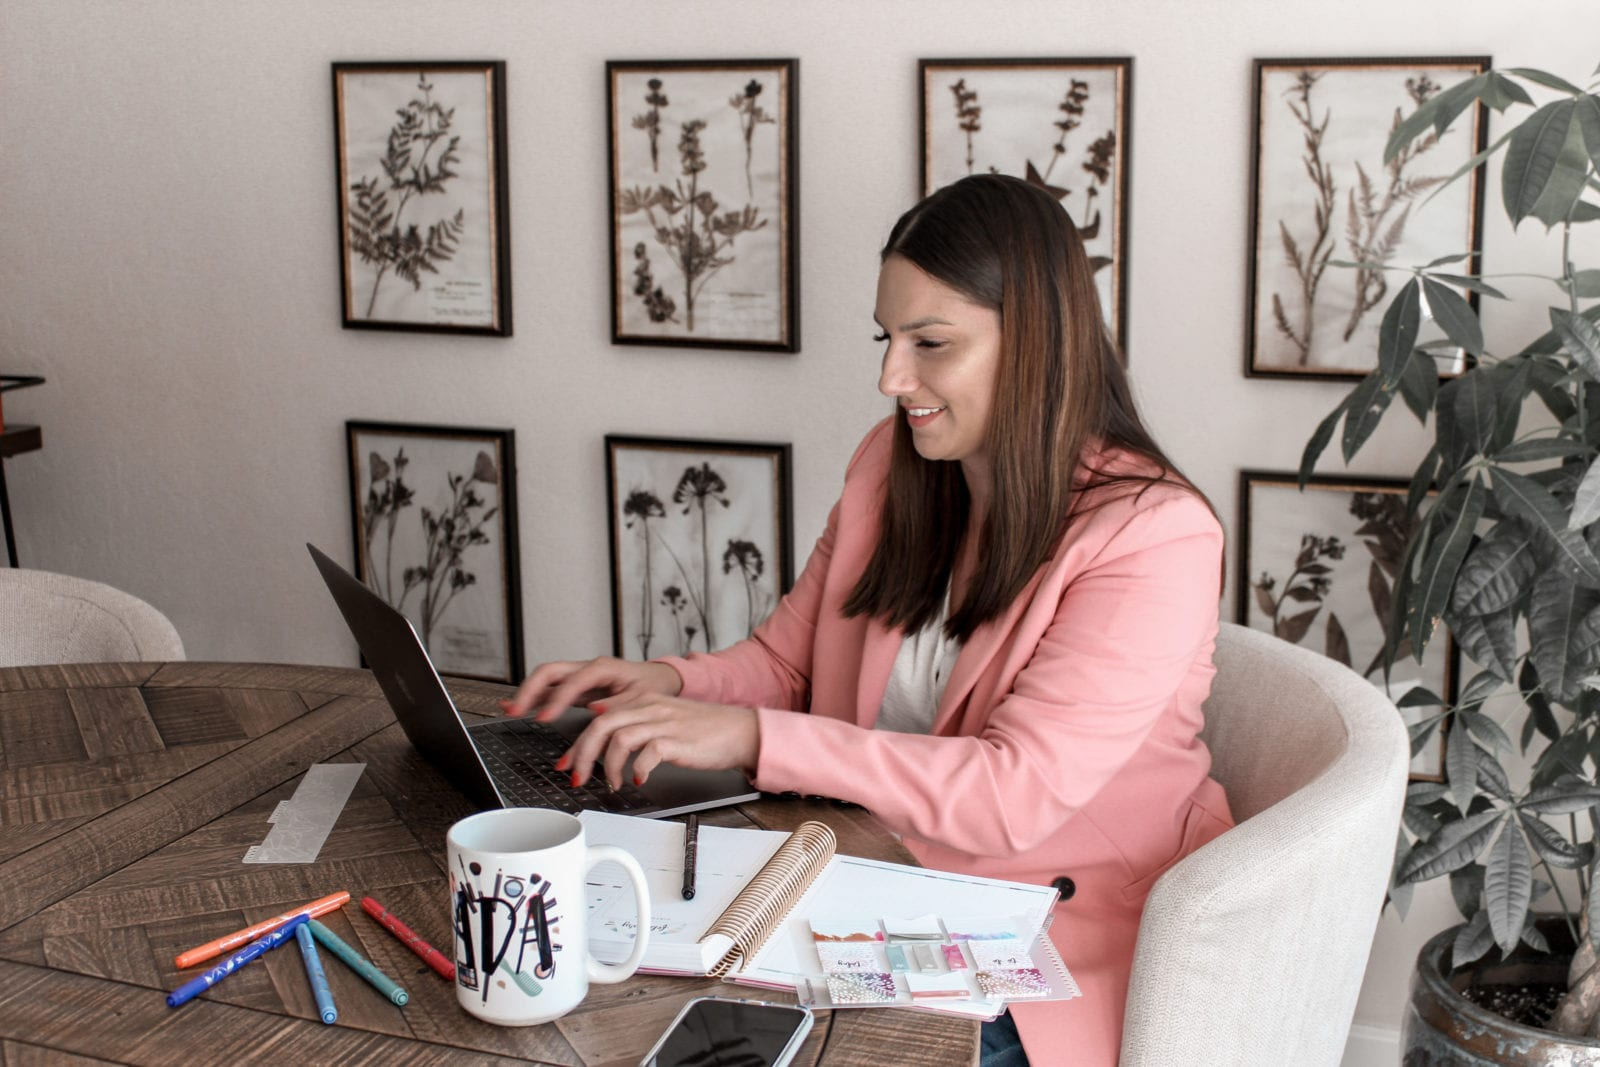 In this image, Adaleta is sitting at her dining room table, writing out her financial goals for 2020. She's utilizing her planner, her computer, and the Lexington Law app on her phone to plan her path to financial freedom.